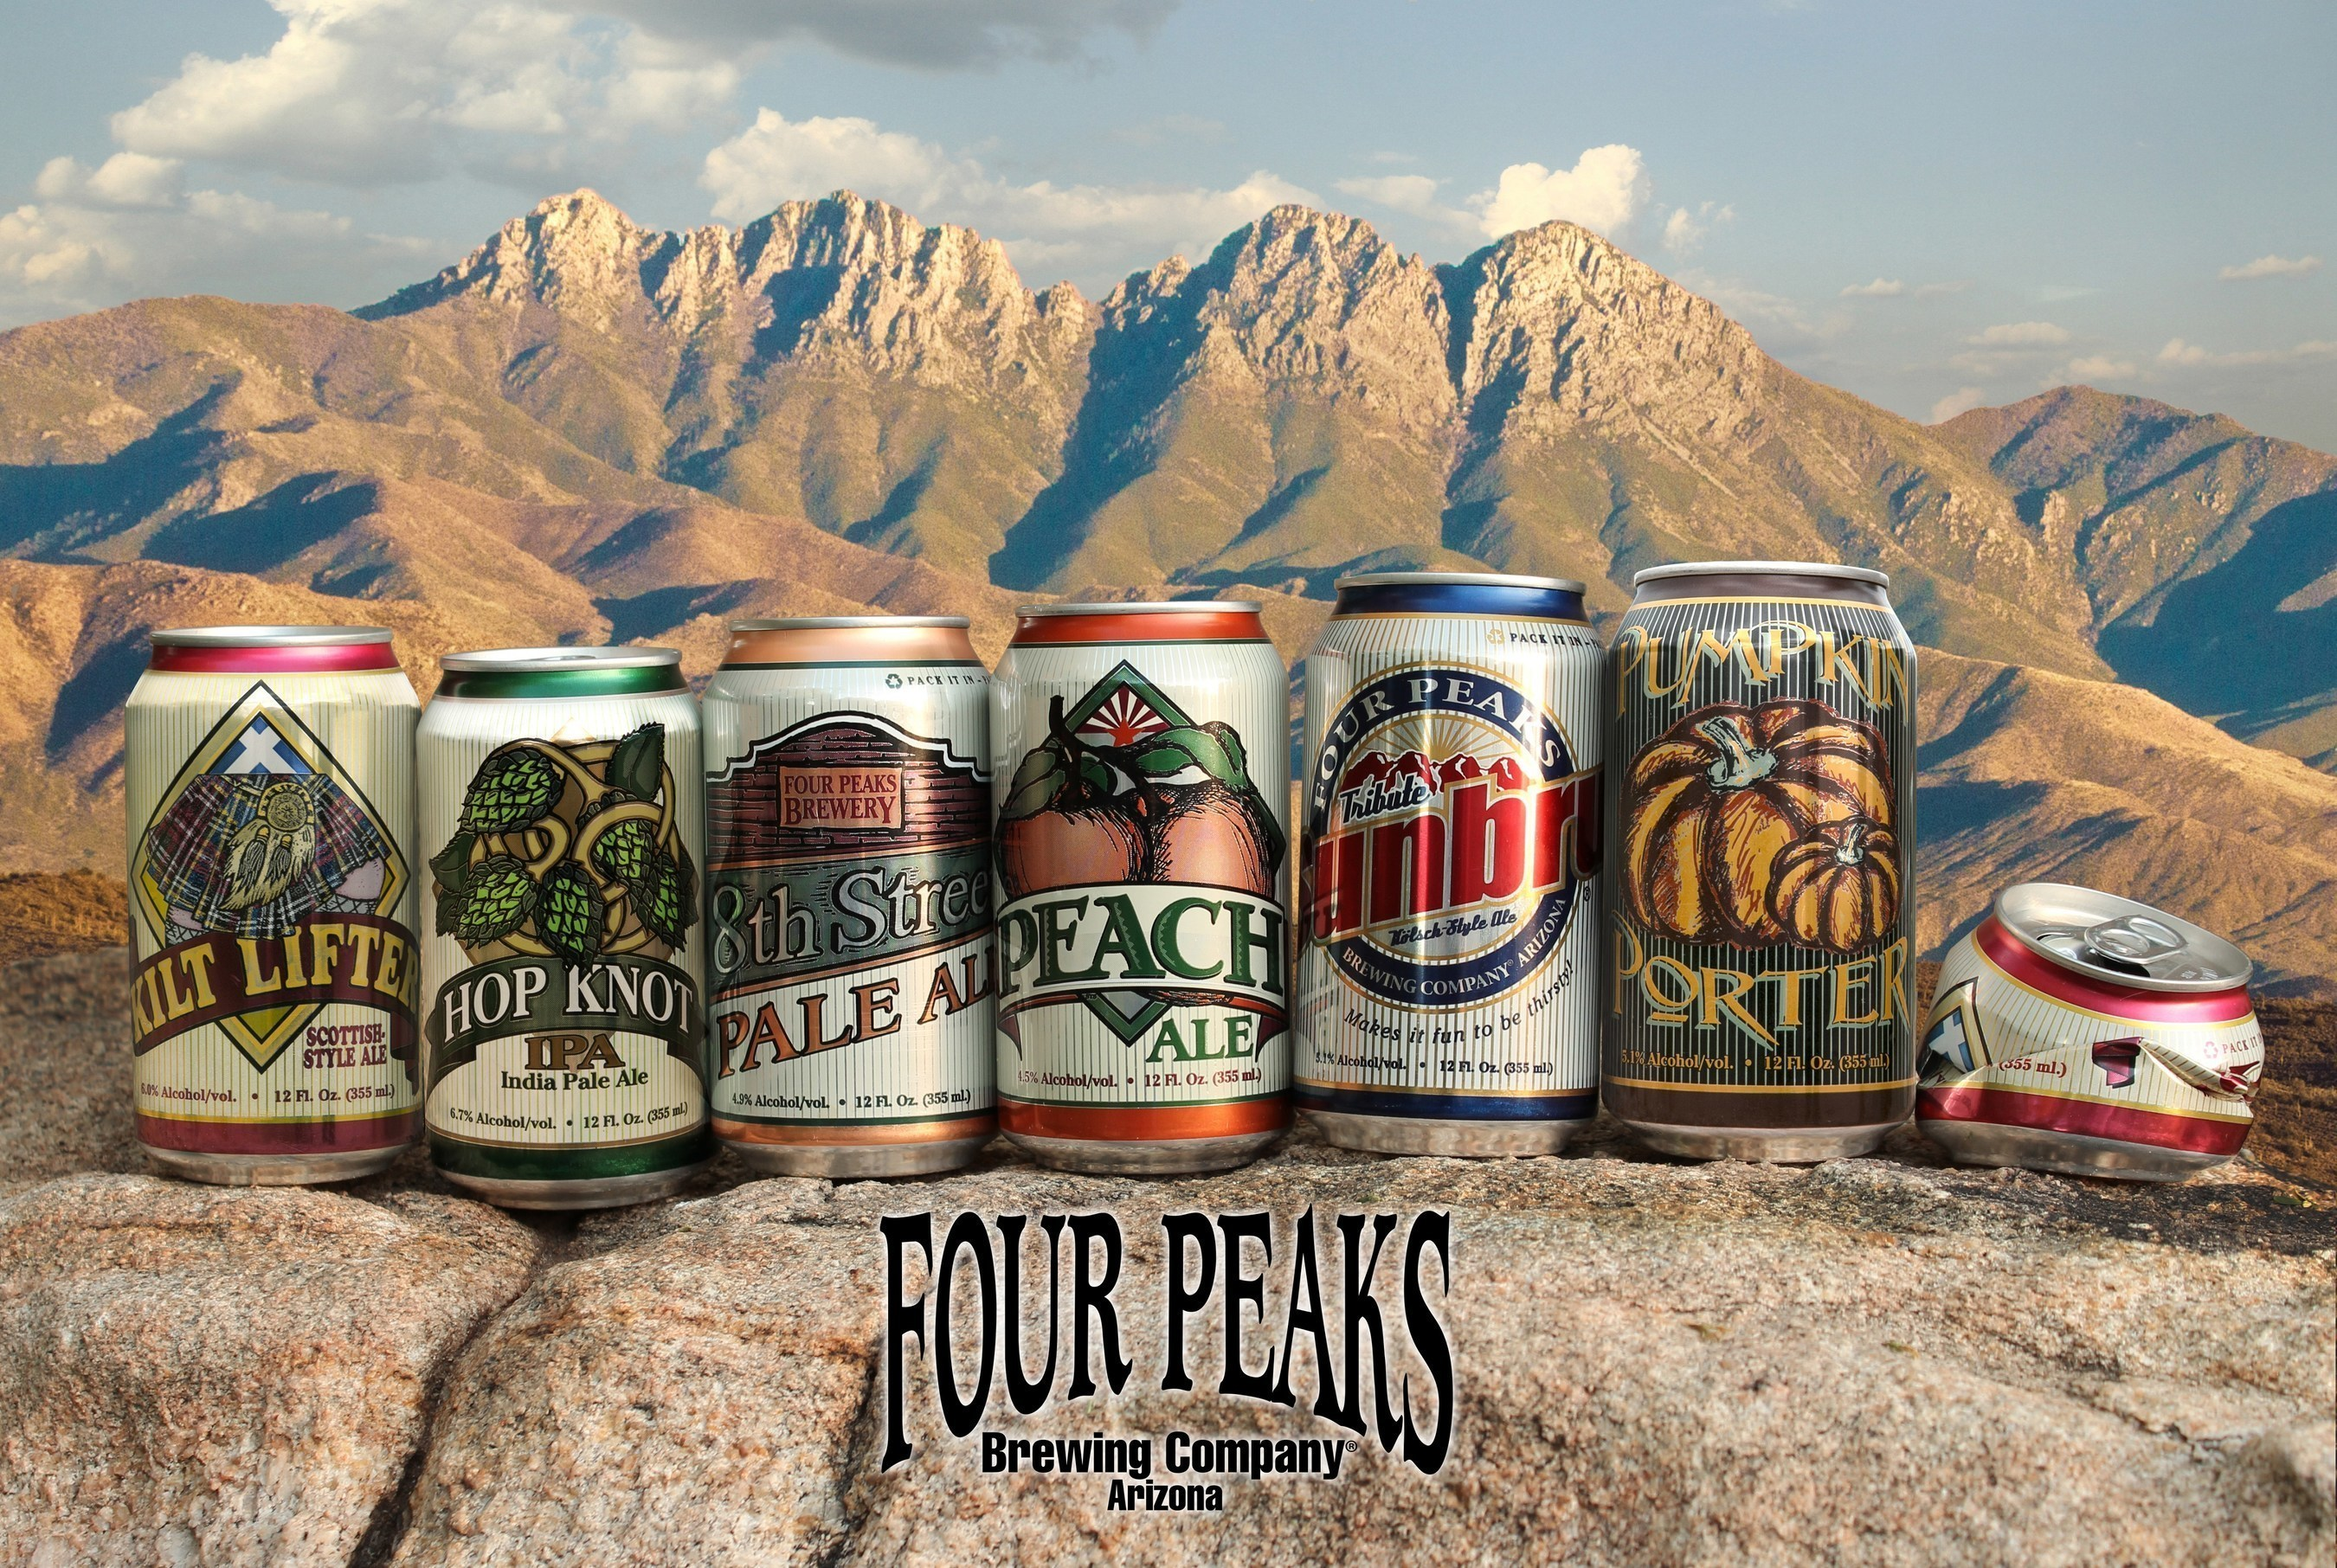 Four Peaks Brewing Company has launched five of its beers in Rexam 12 oz. cans.